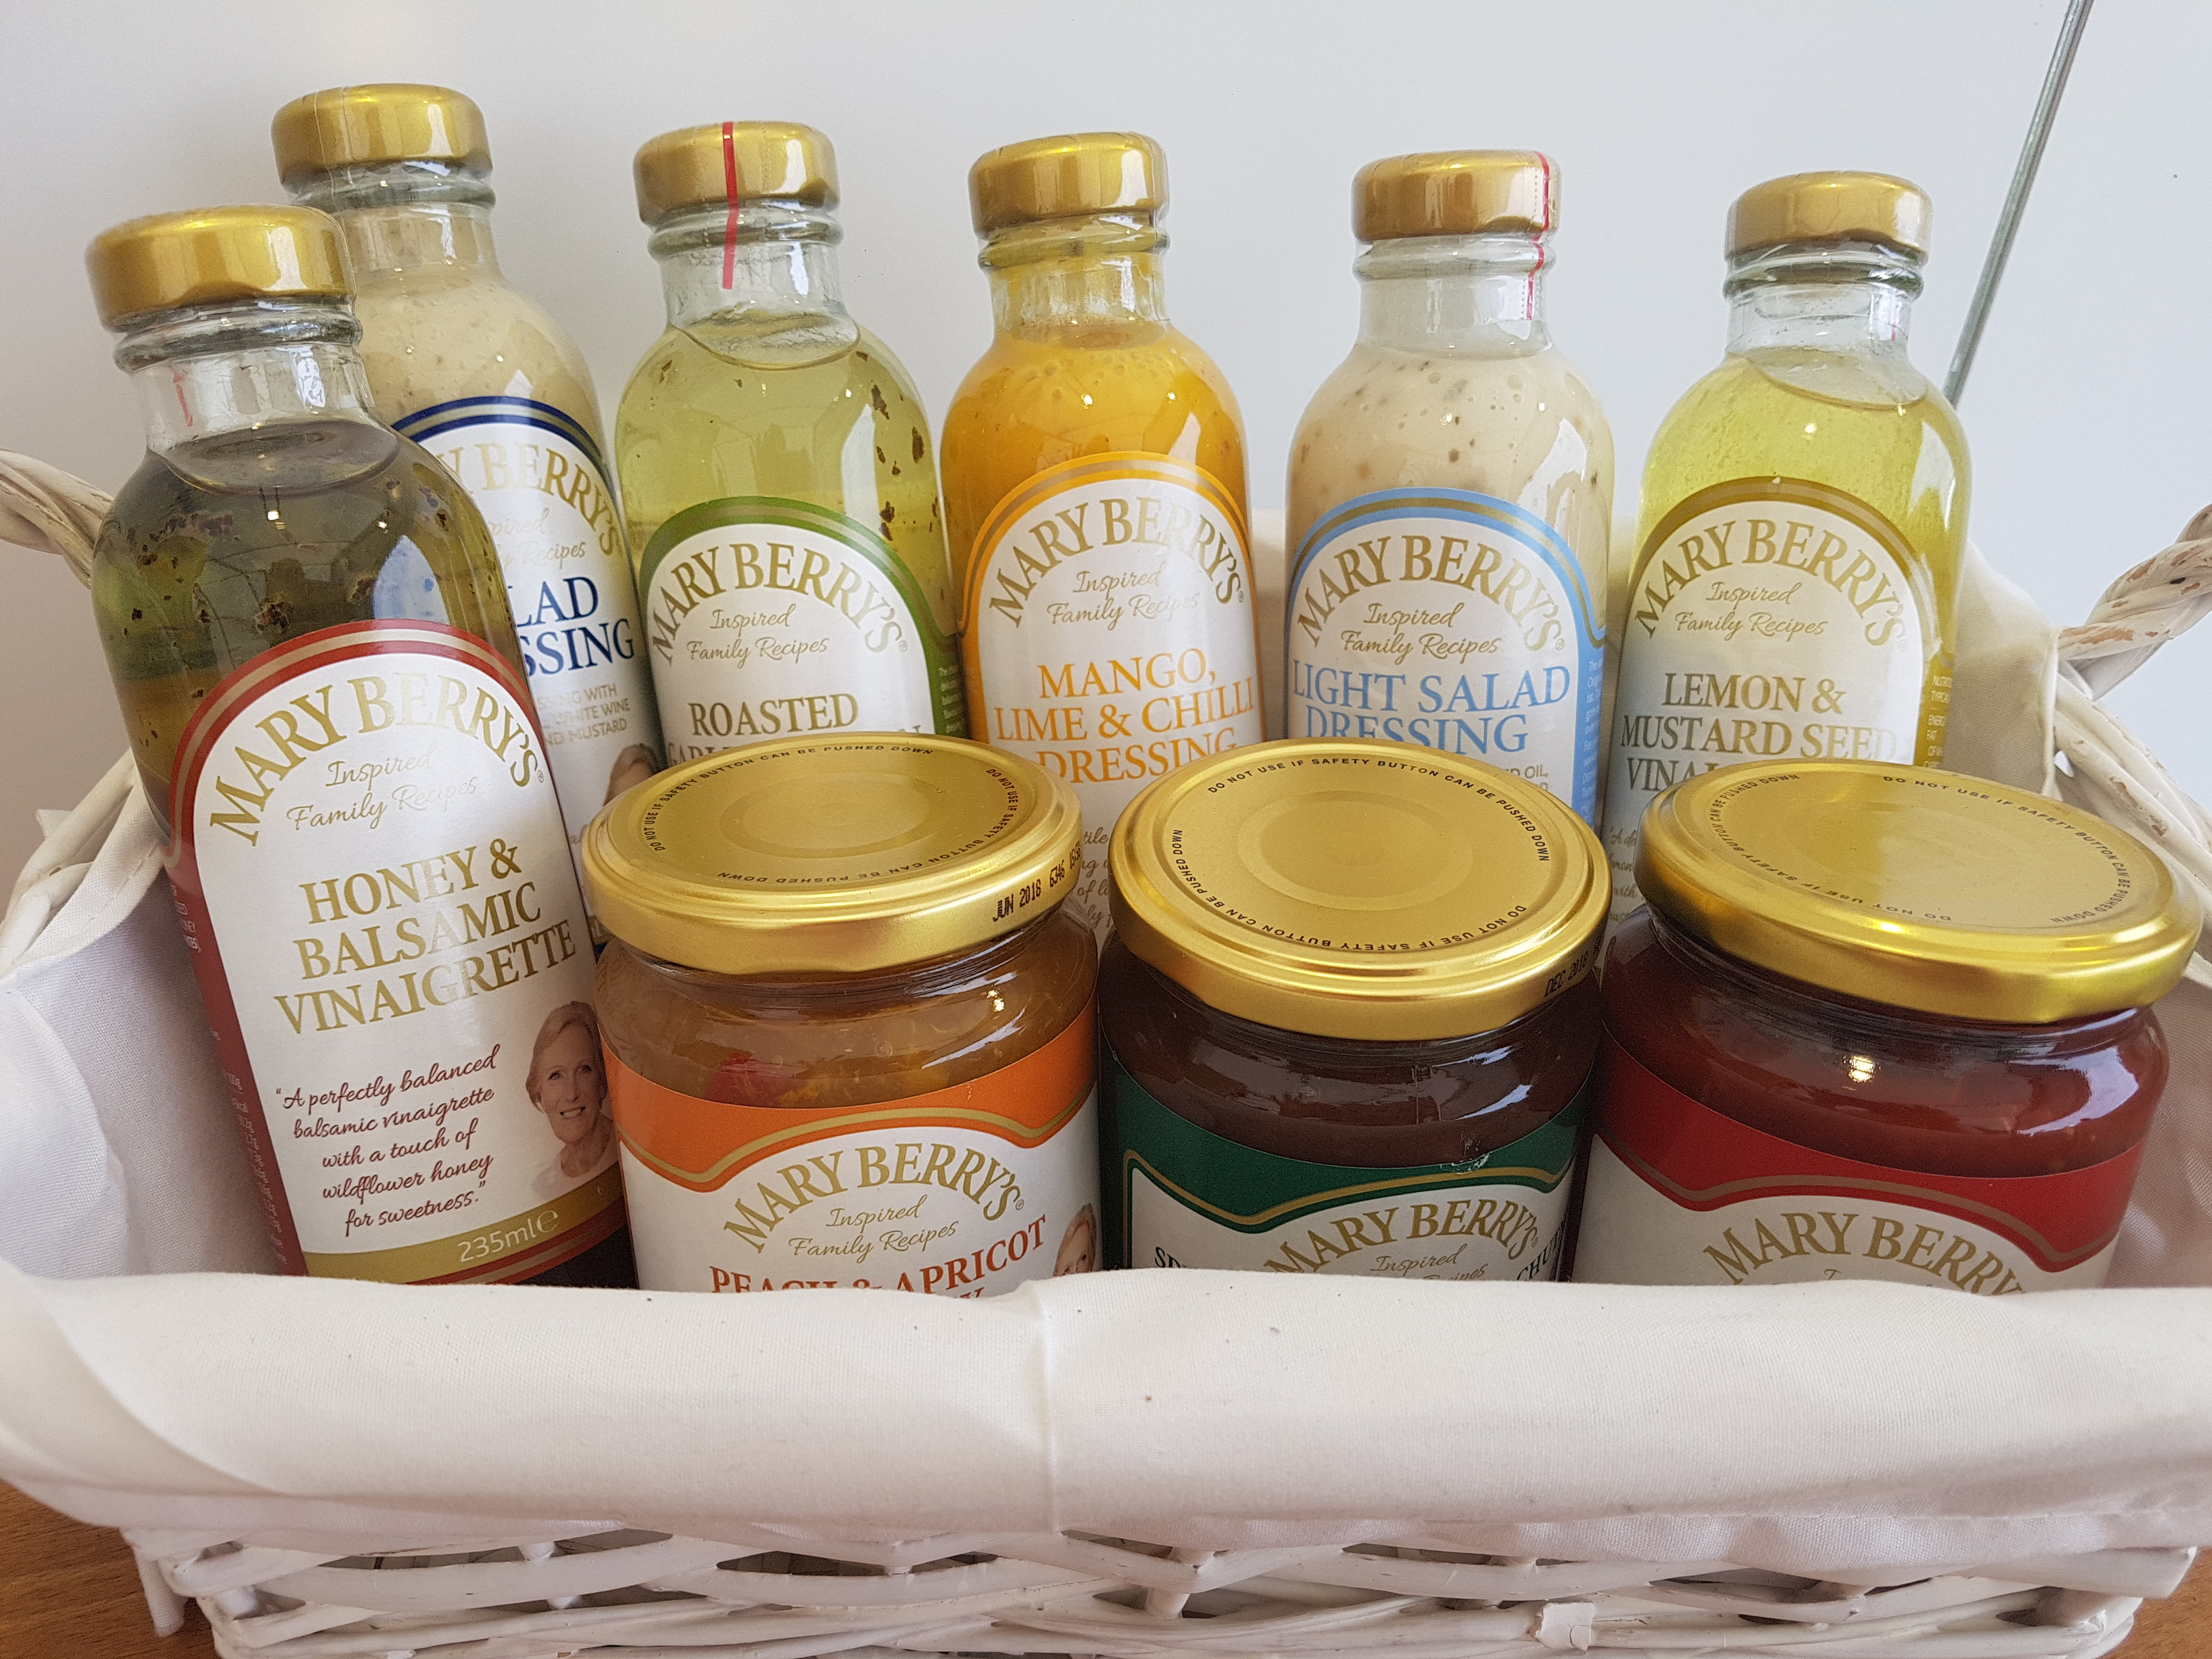 Foodies Festival at Alexandra Palace Mary Berrys sauces